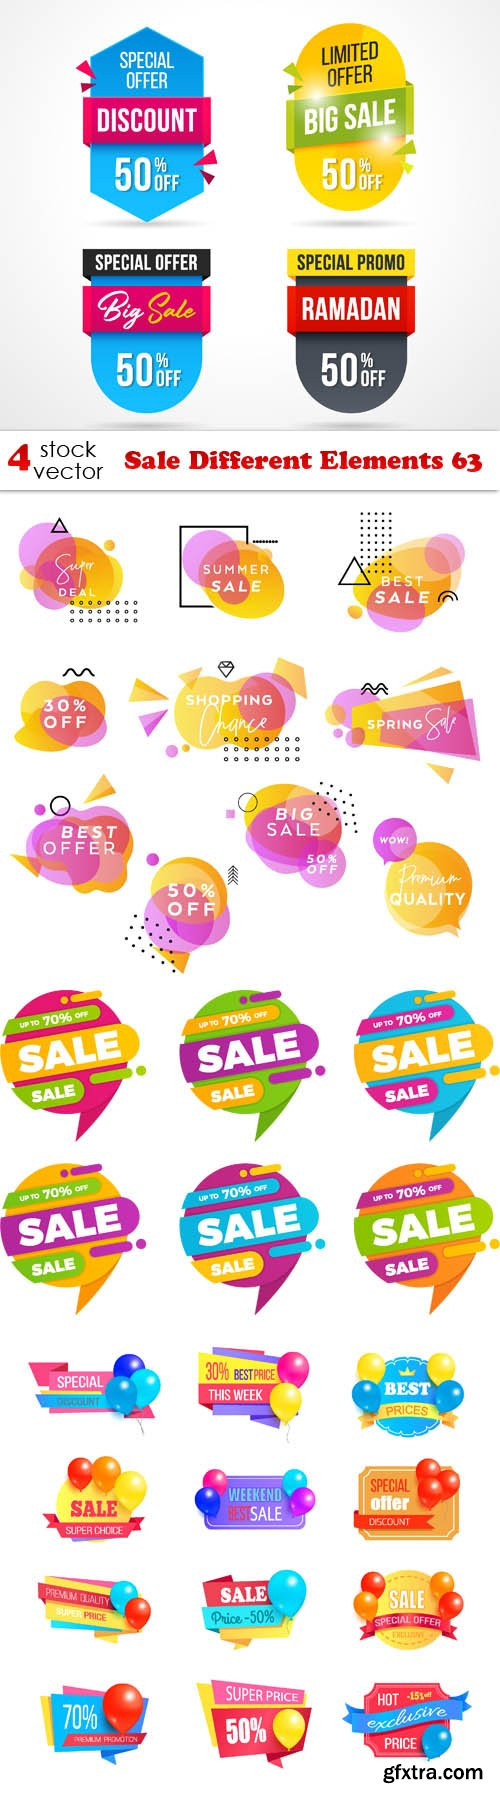 Vectors - Sale Different Elements 63